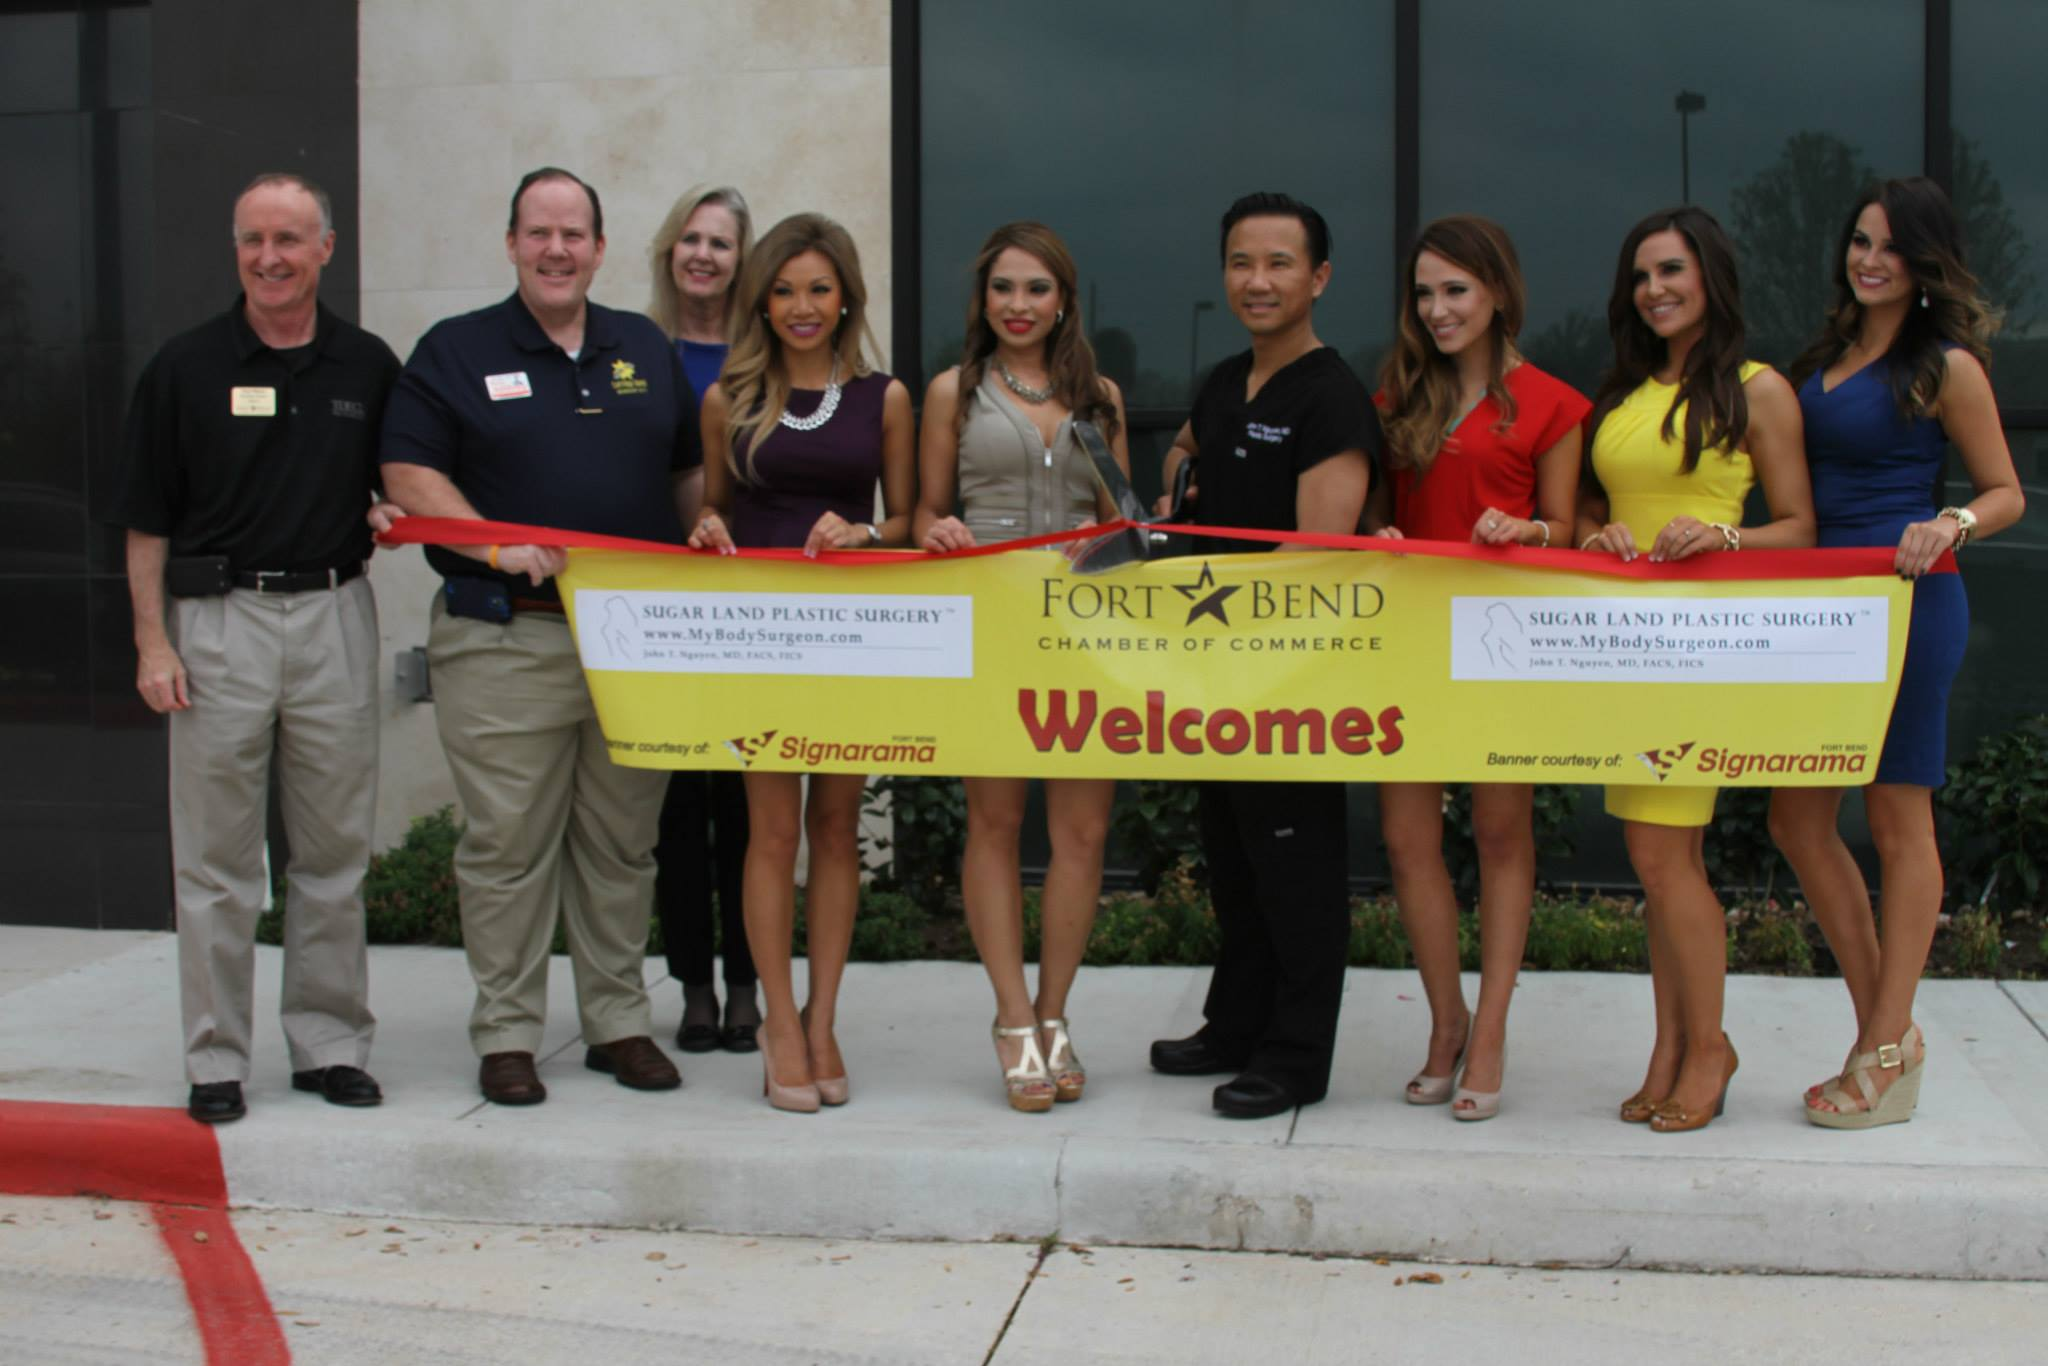 Grand Opening Celebration of Sugar Land Plastic Surgery